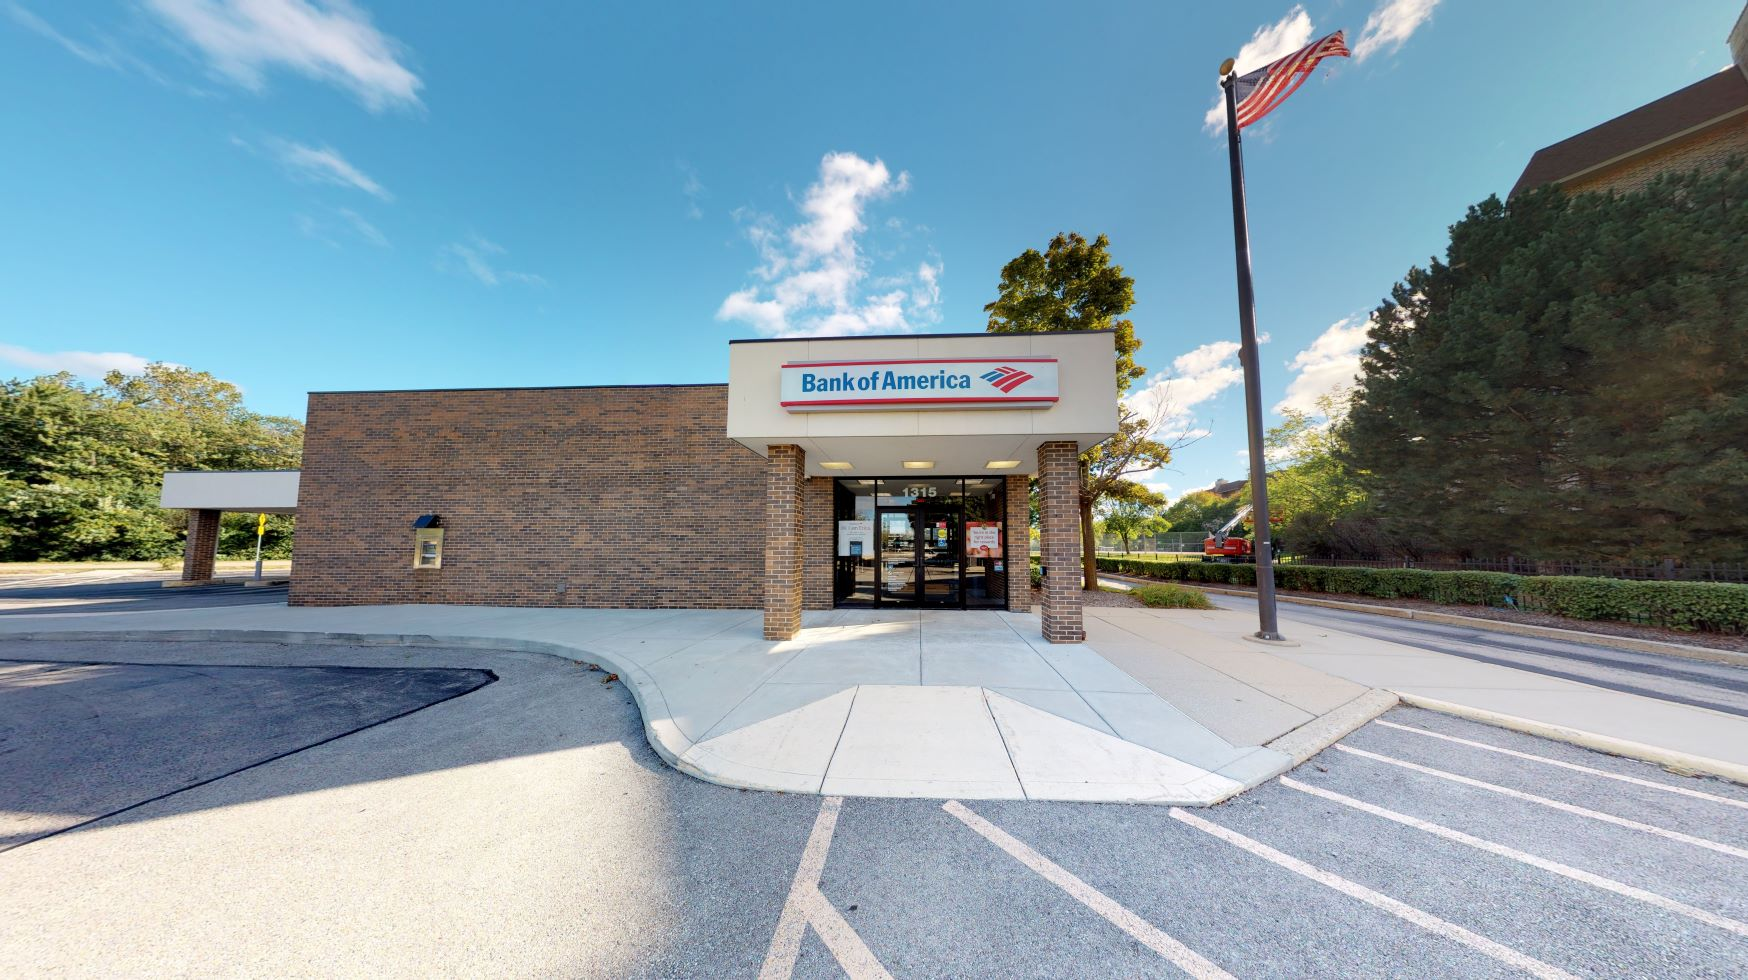 Bank of America financial center with drive-thru ATM | 1315 Lake Cook Rd, Northbrook, IL 60062